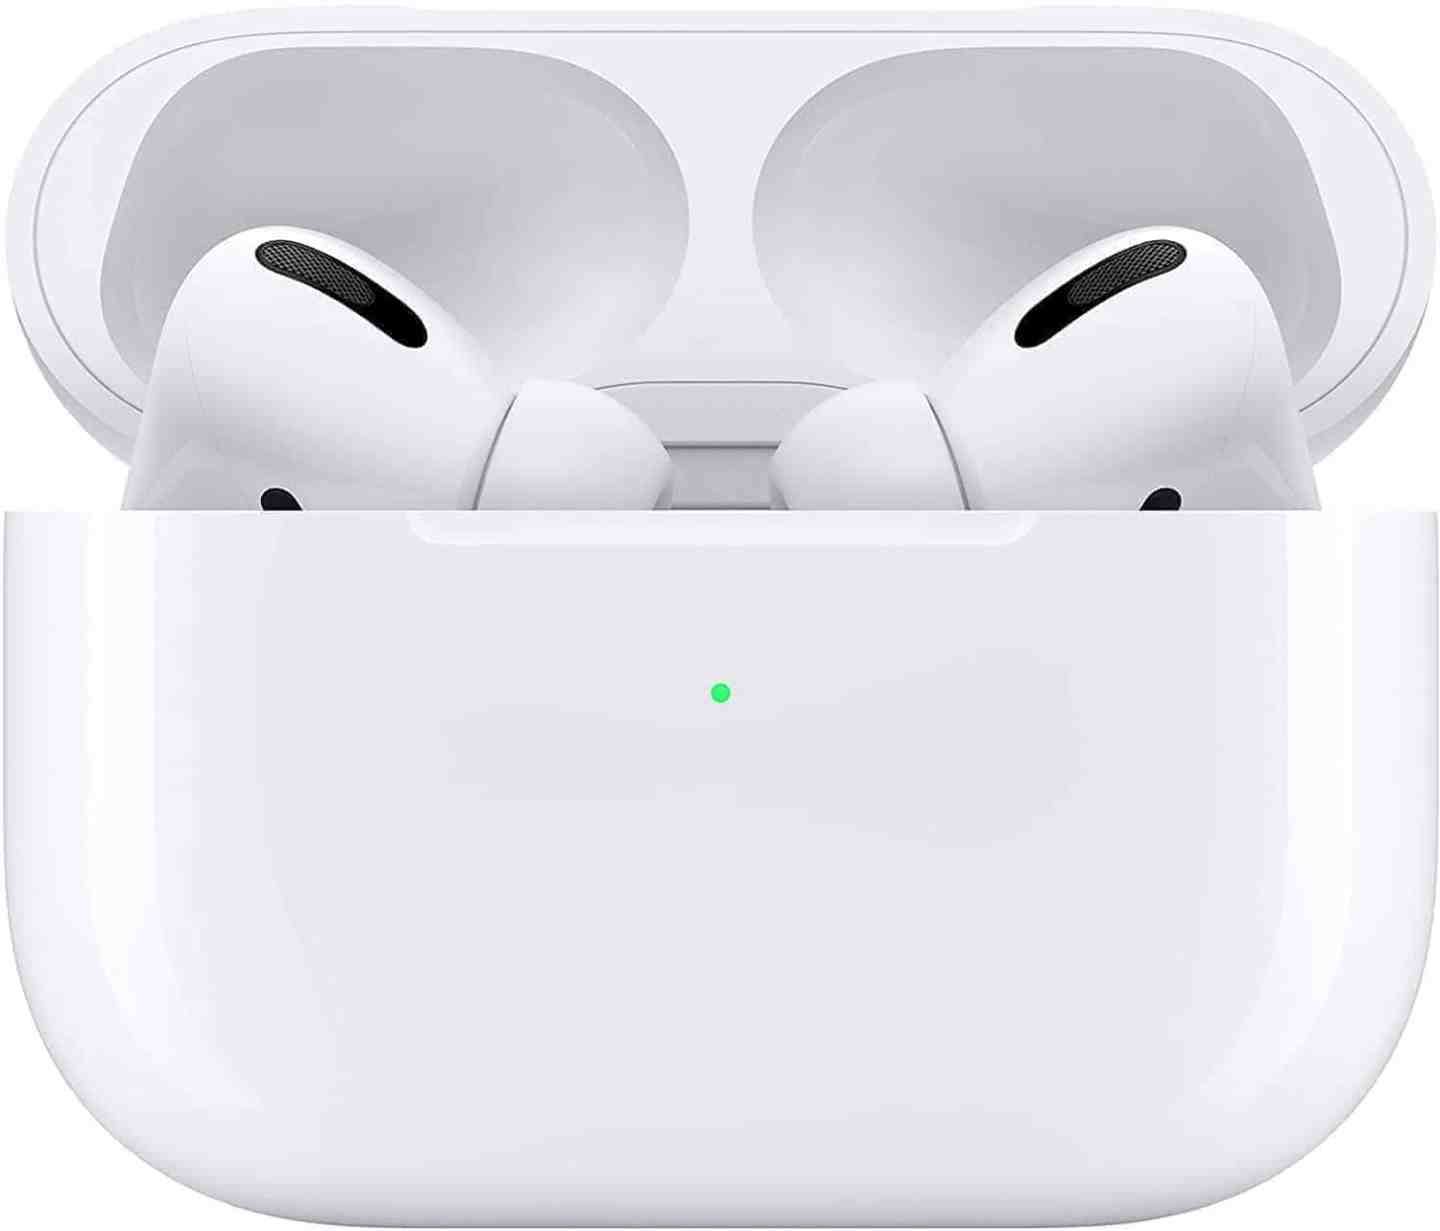 apple-airpods-pro-mothers-day-gift-idea